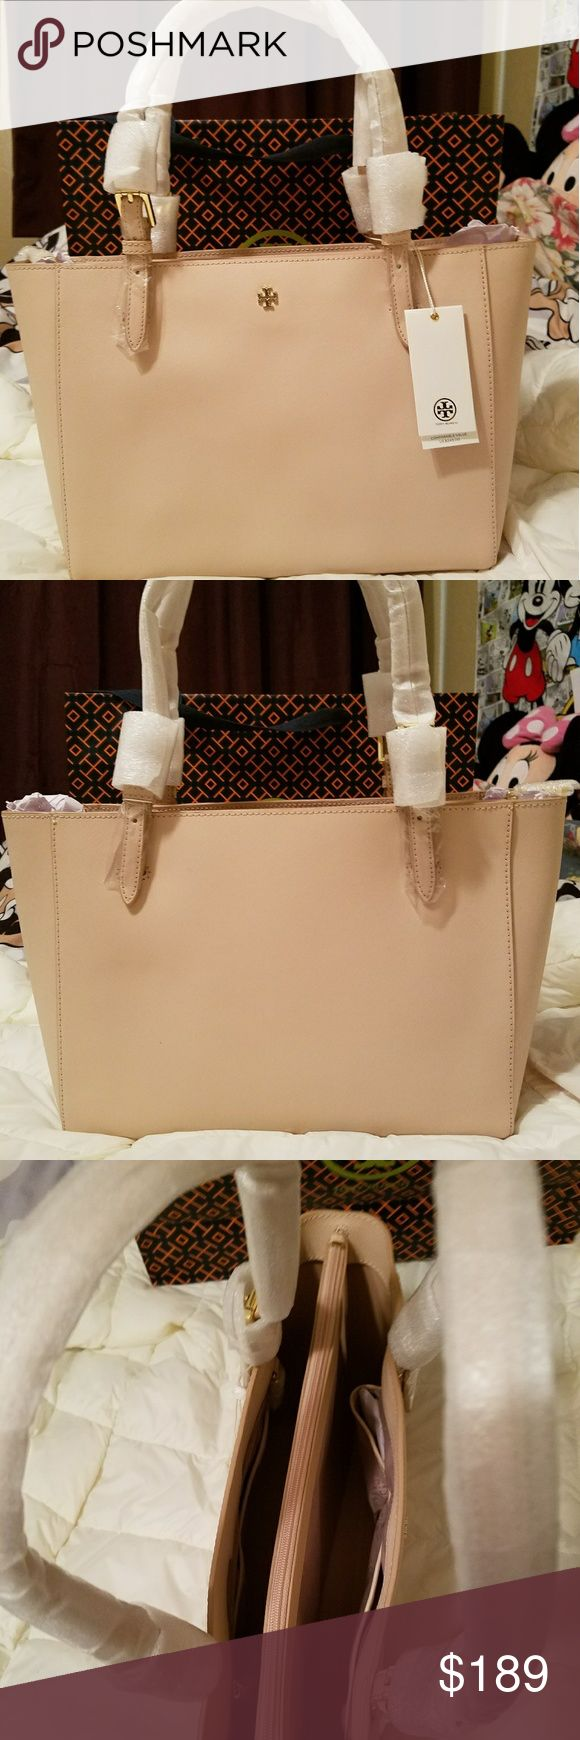 NWT Tory Burch Small York' Saffiano Leather Brand New Small York' Saffiano Leather Buckle Tote. Light Oak.Comes with paperbag. Tory Burch Bags Satchels